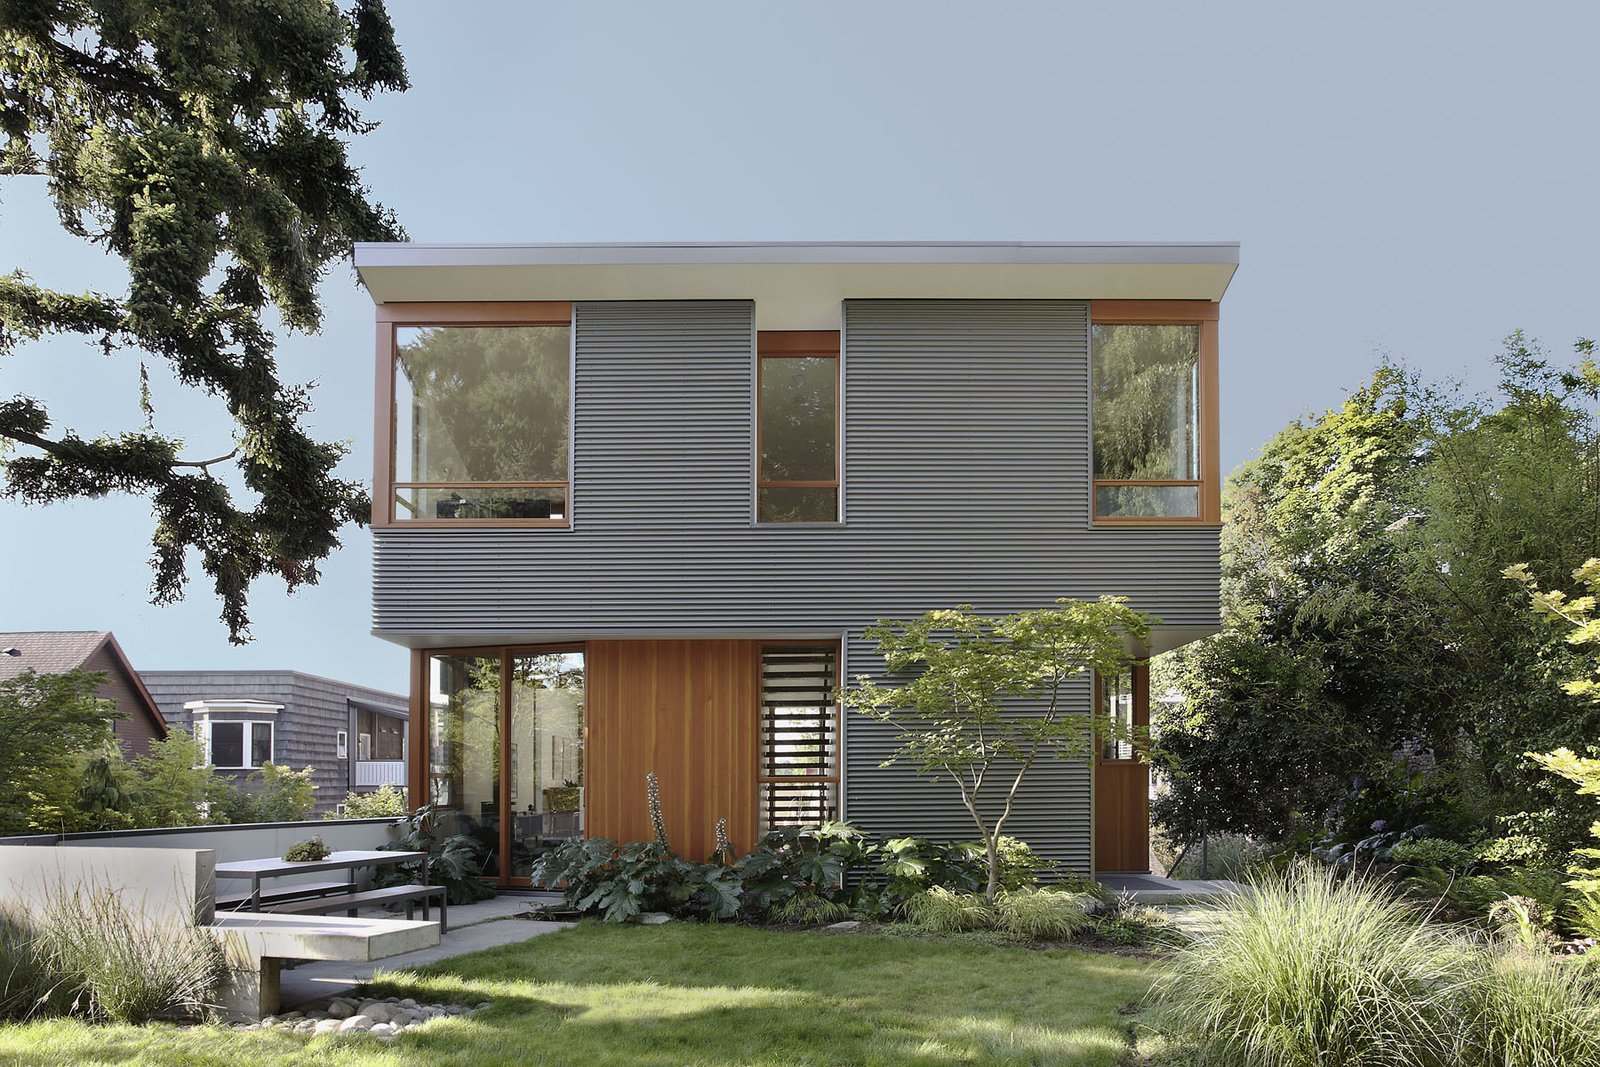 Articles about seattle home carefully blocks out neighbors while celebrating natural on Dwell.com